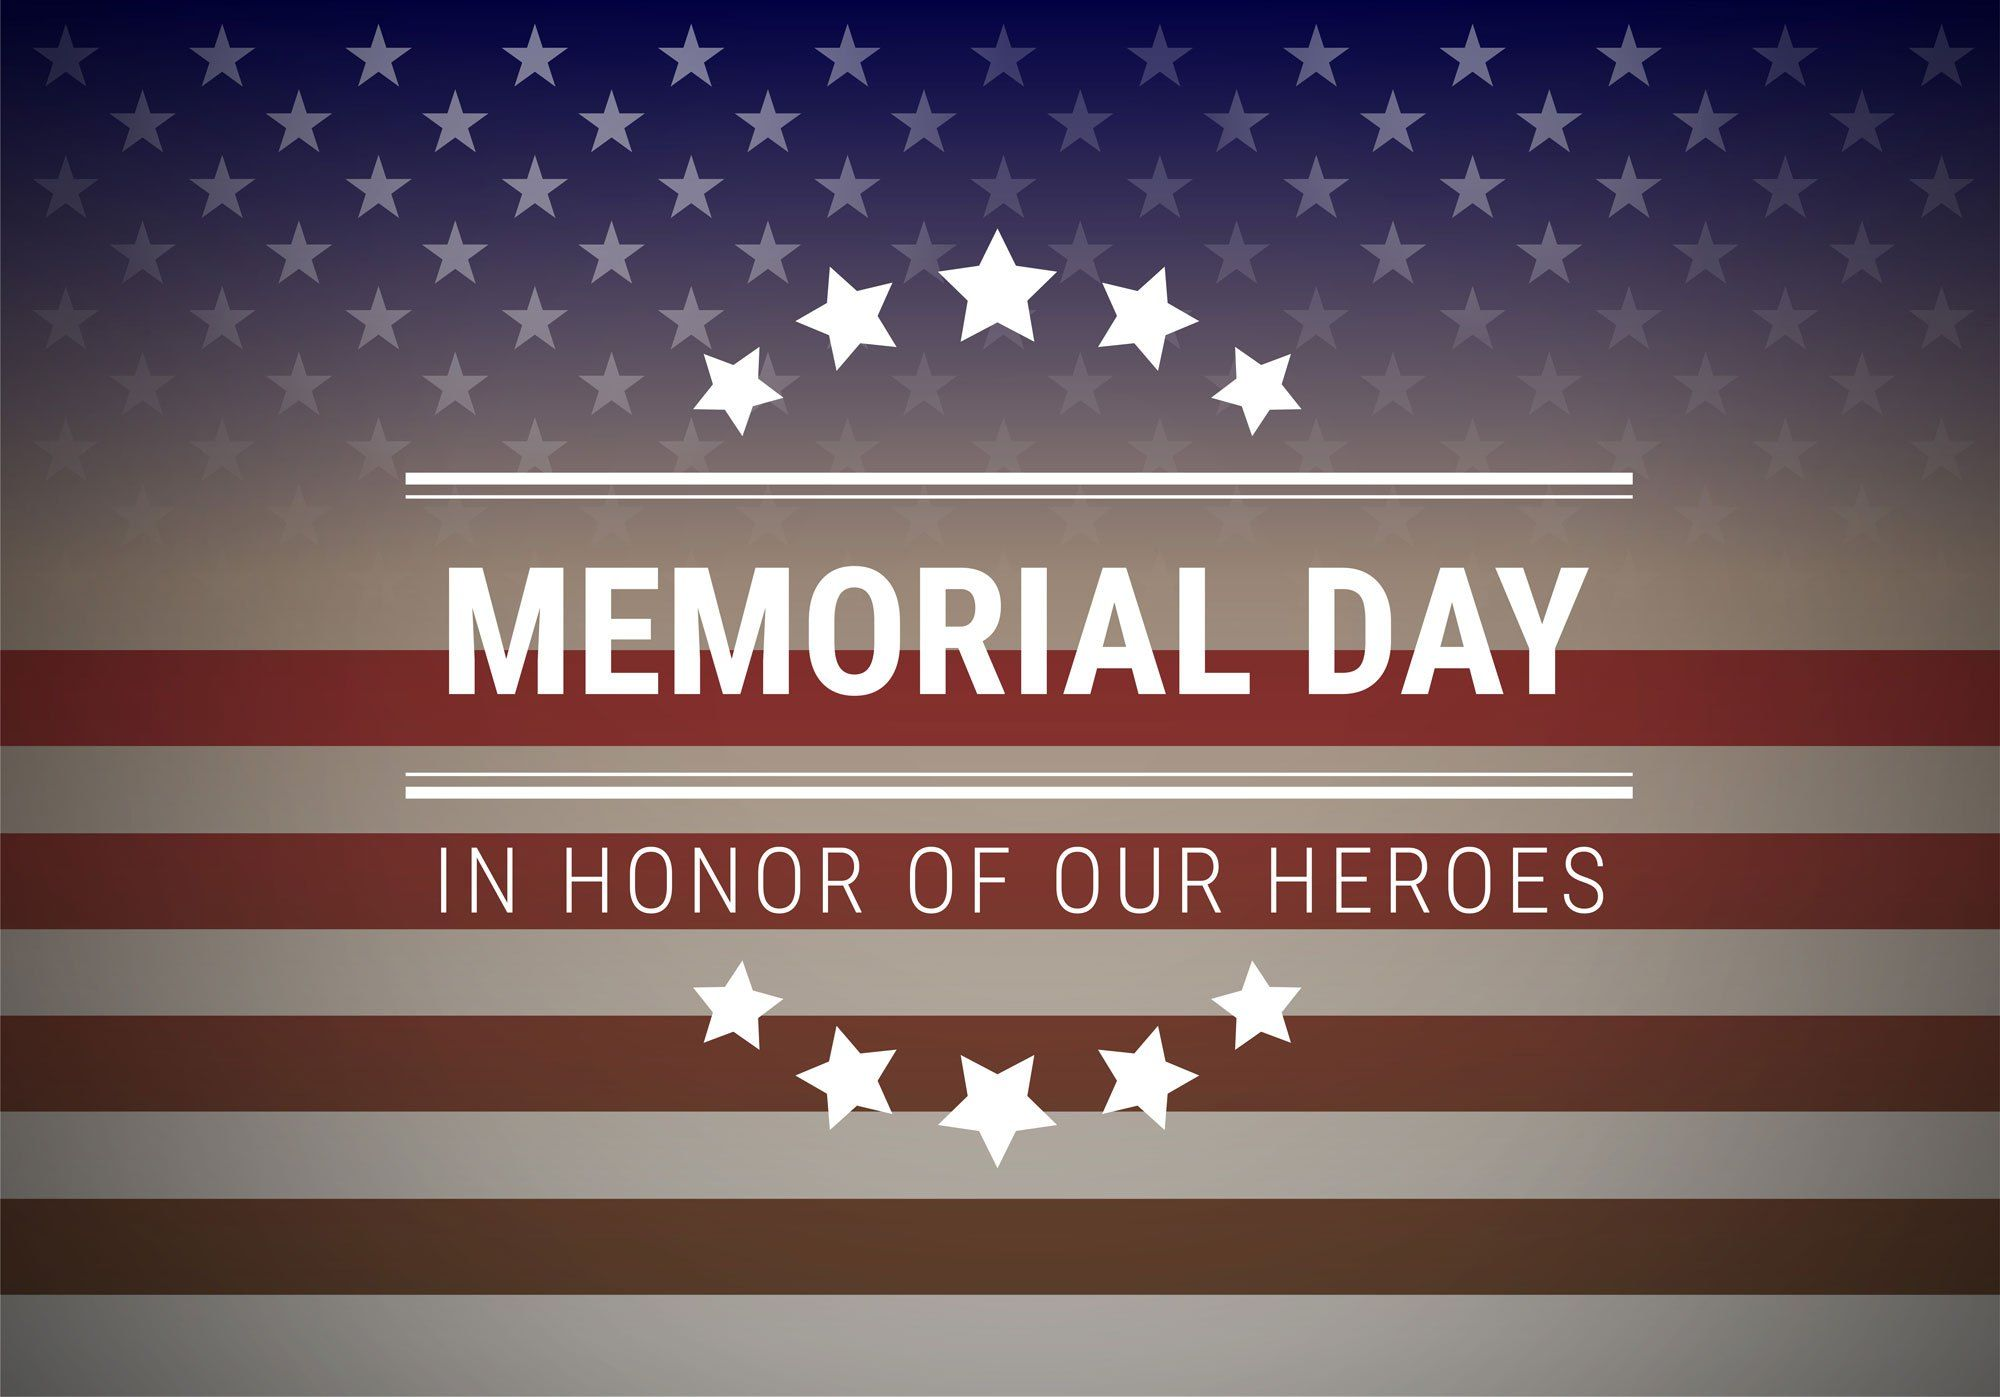 Usa Flag Co Wishes You A Safe And Happy Memorial Day We Honor The Memory Of Service Memb Happy Independence Day Images Memorial Day Independence Day Pictures